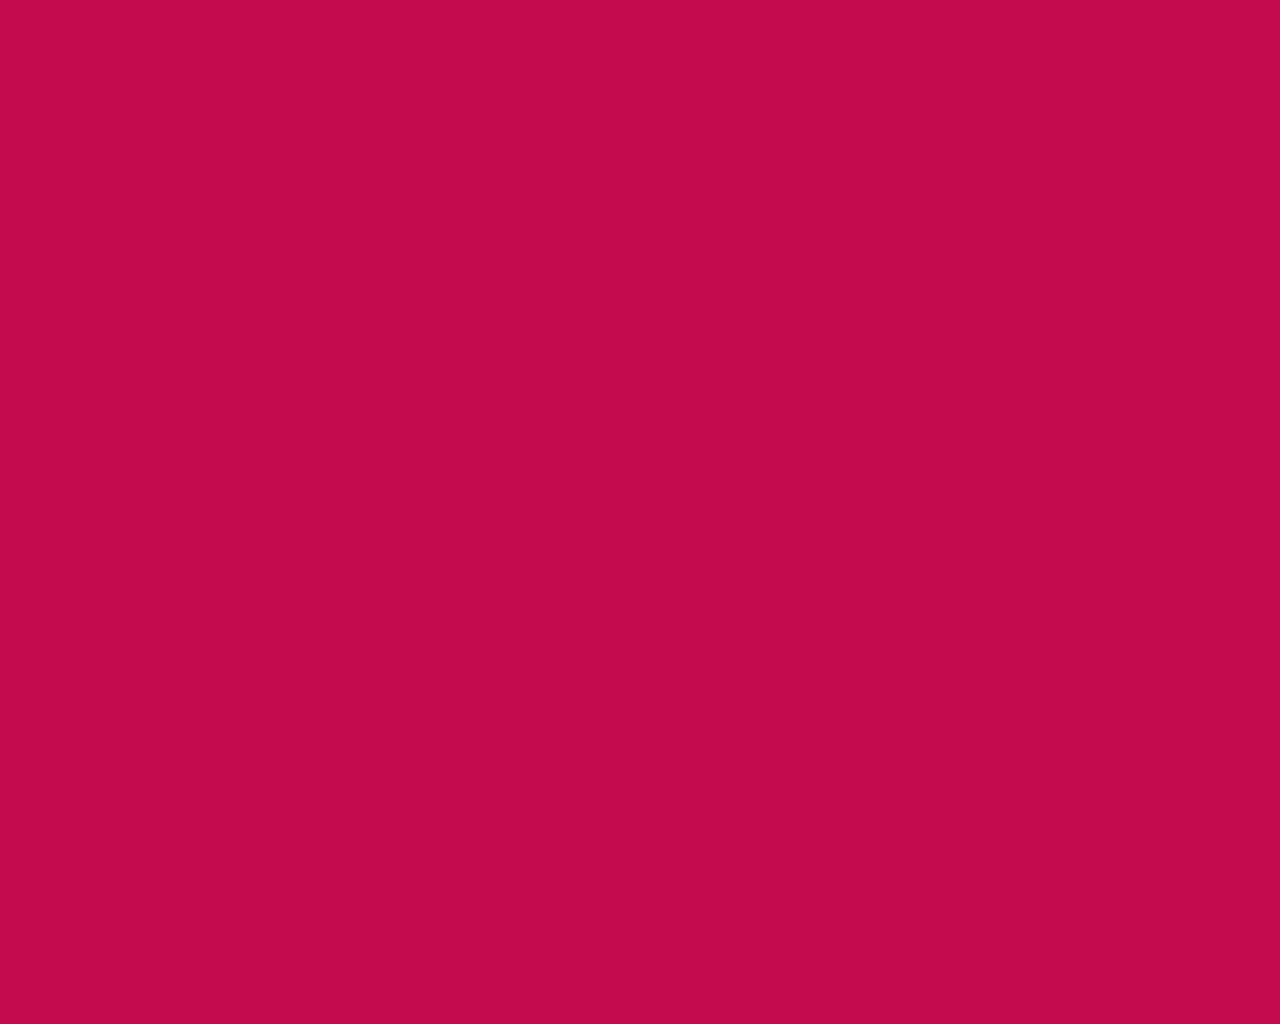 Privacy Policy >> 1280x1024 Pictorial Carmine Solid Color Background